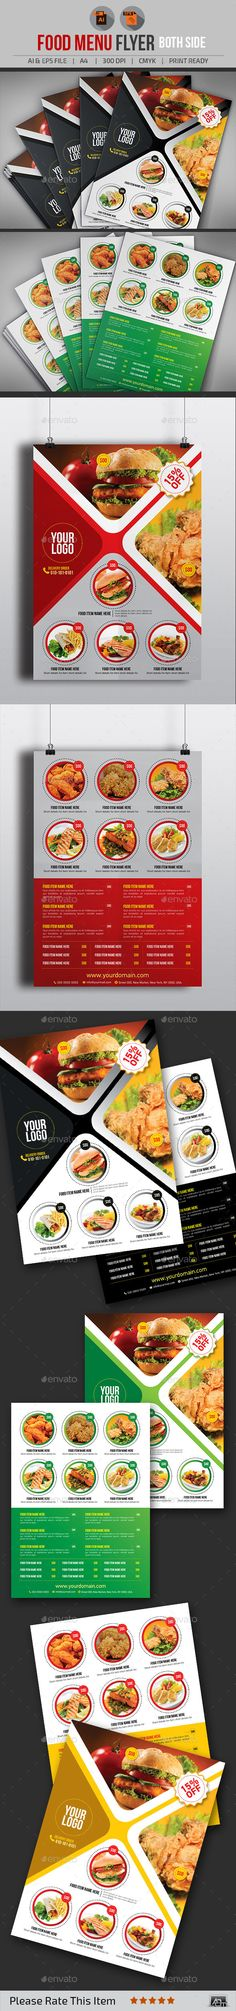 Food Menu Flyer Template Design Download HttpGraphicriverNet